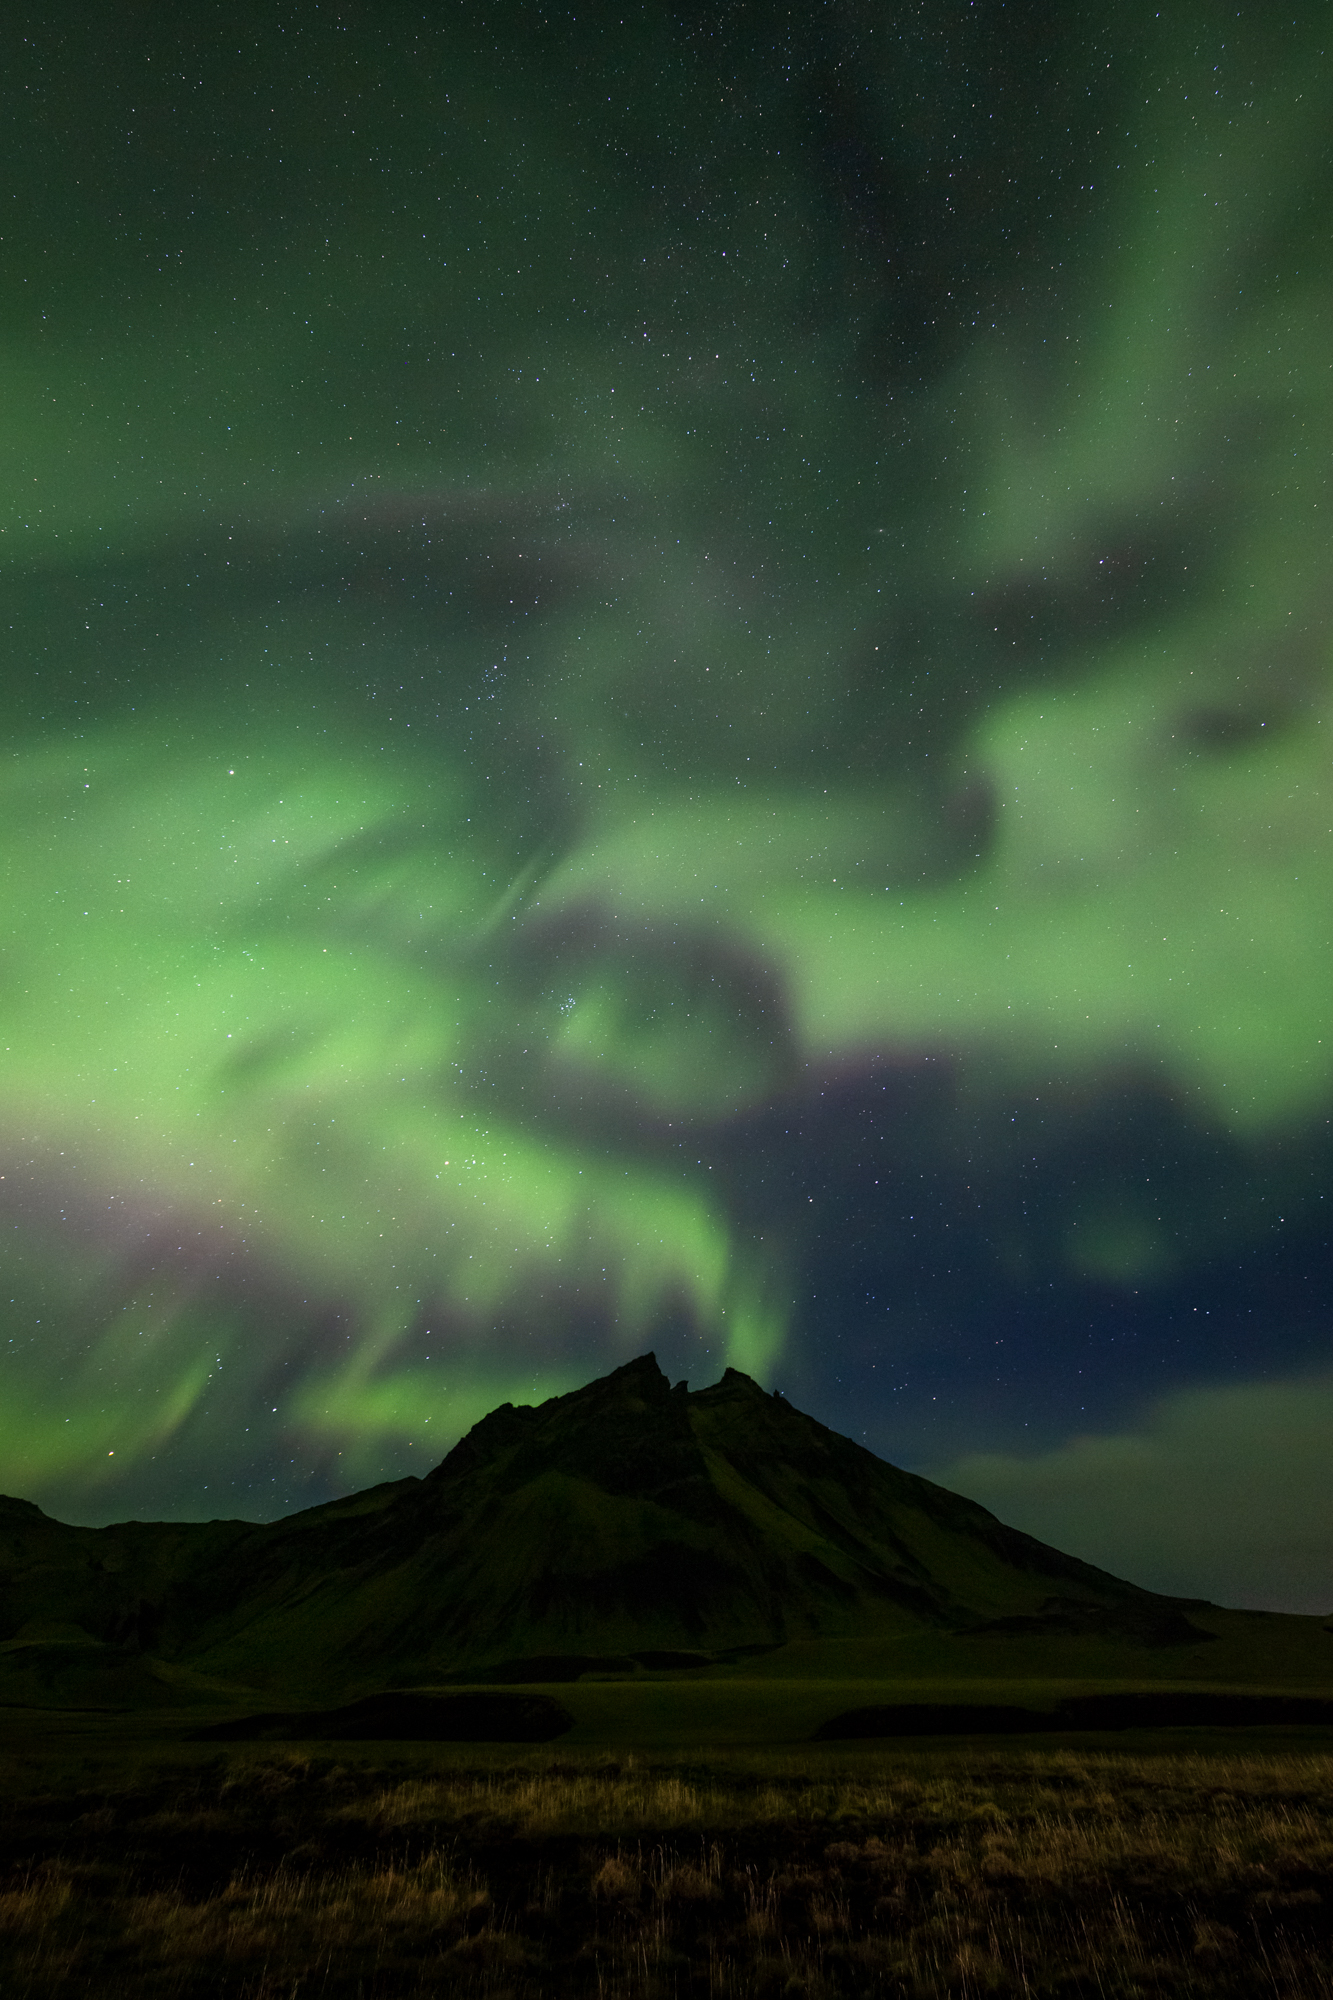 A swirling river of light and dark created by the Aurora Borealis dances atop a pyramid shaped mountain in the South of Iceland during a solar storm.  Vibrant and dancing auroras occur when either a sun spot, flare, or coronal hole on the sun create a cosmic stream of energized particles known as the solar wind, that blows at nearly one million miles per hour towards our remarkably resilient planet. During such a storm, these energized particles are deflected by earth's magnetic field and are funneled near the poles where their energy is emitted as the brilliant Northern Lights.